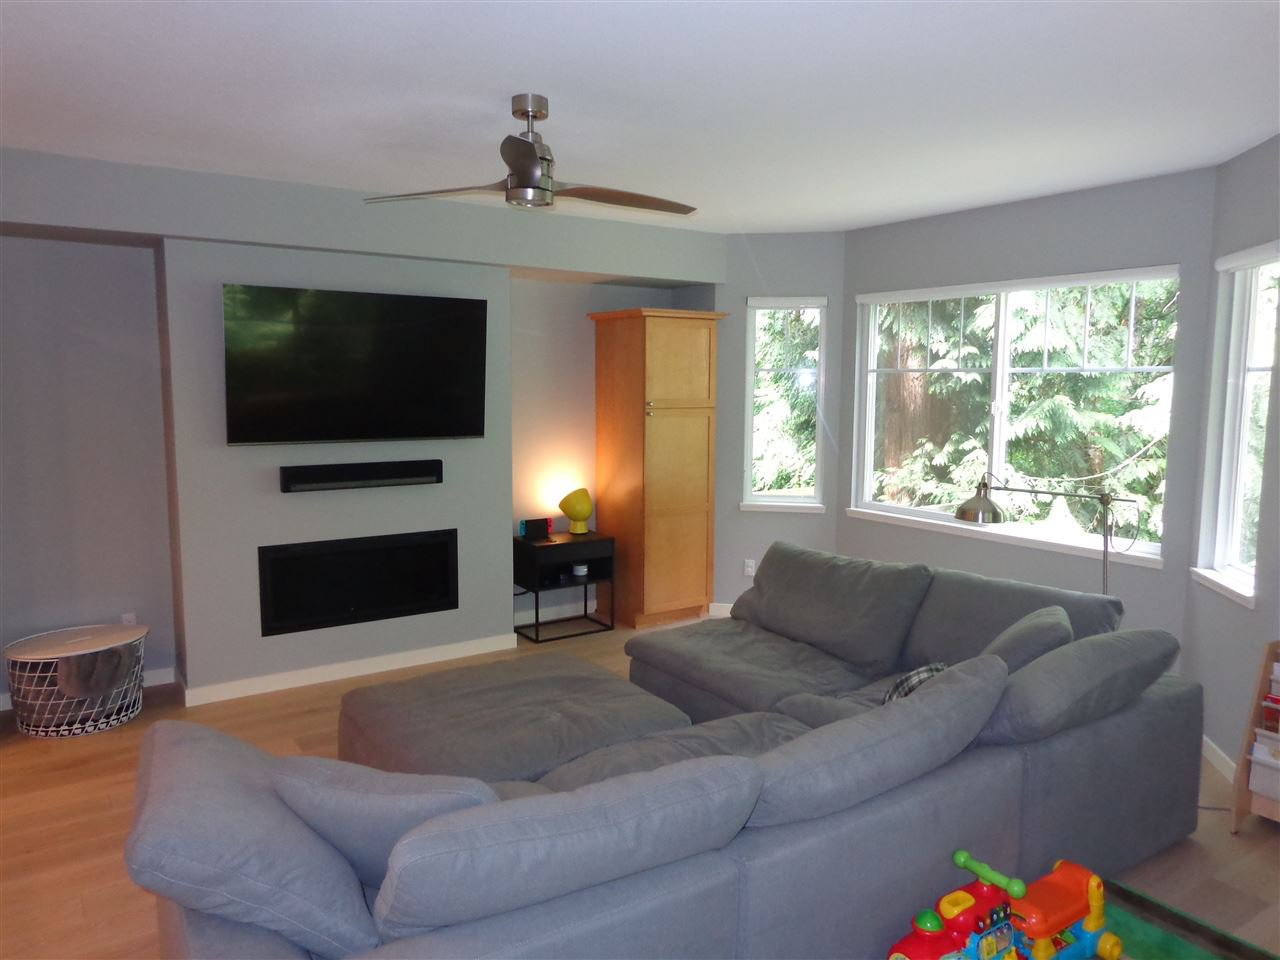 """Photo 12: Photos: 10 8588 168A Street in Surrey: Fleetwood Tynehead Townhouse for sale in """"The Brookstone"""" : MLS®# R2384013"""